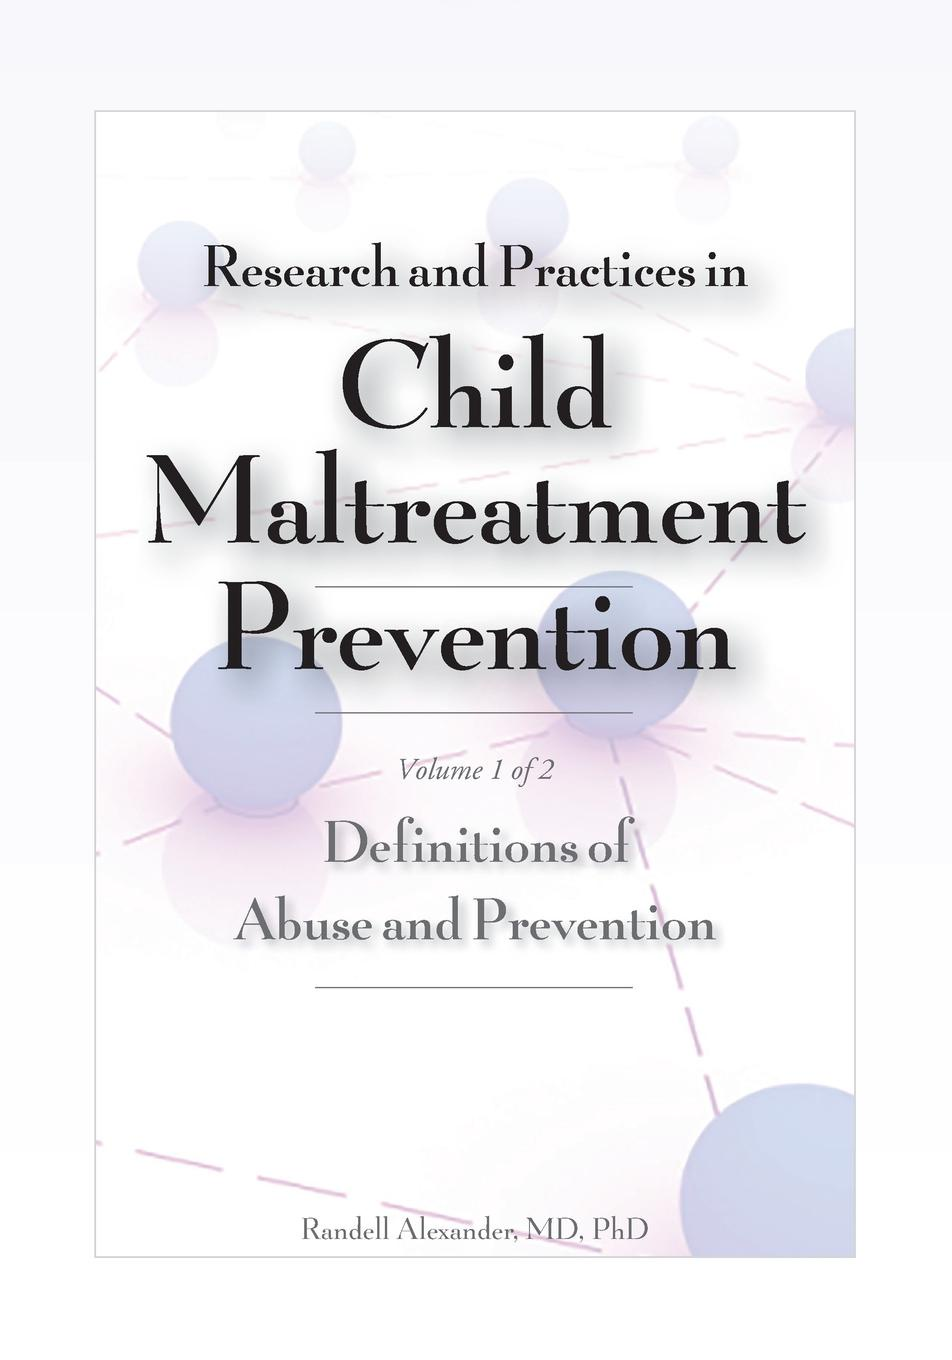 Alexander Randell Research and Practices in Child Maltreatment Prevention, Volume One. Definitions of Abuse and Prevention maeve wallace irish students views on school substance abuse prevention programme